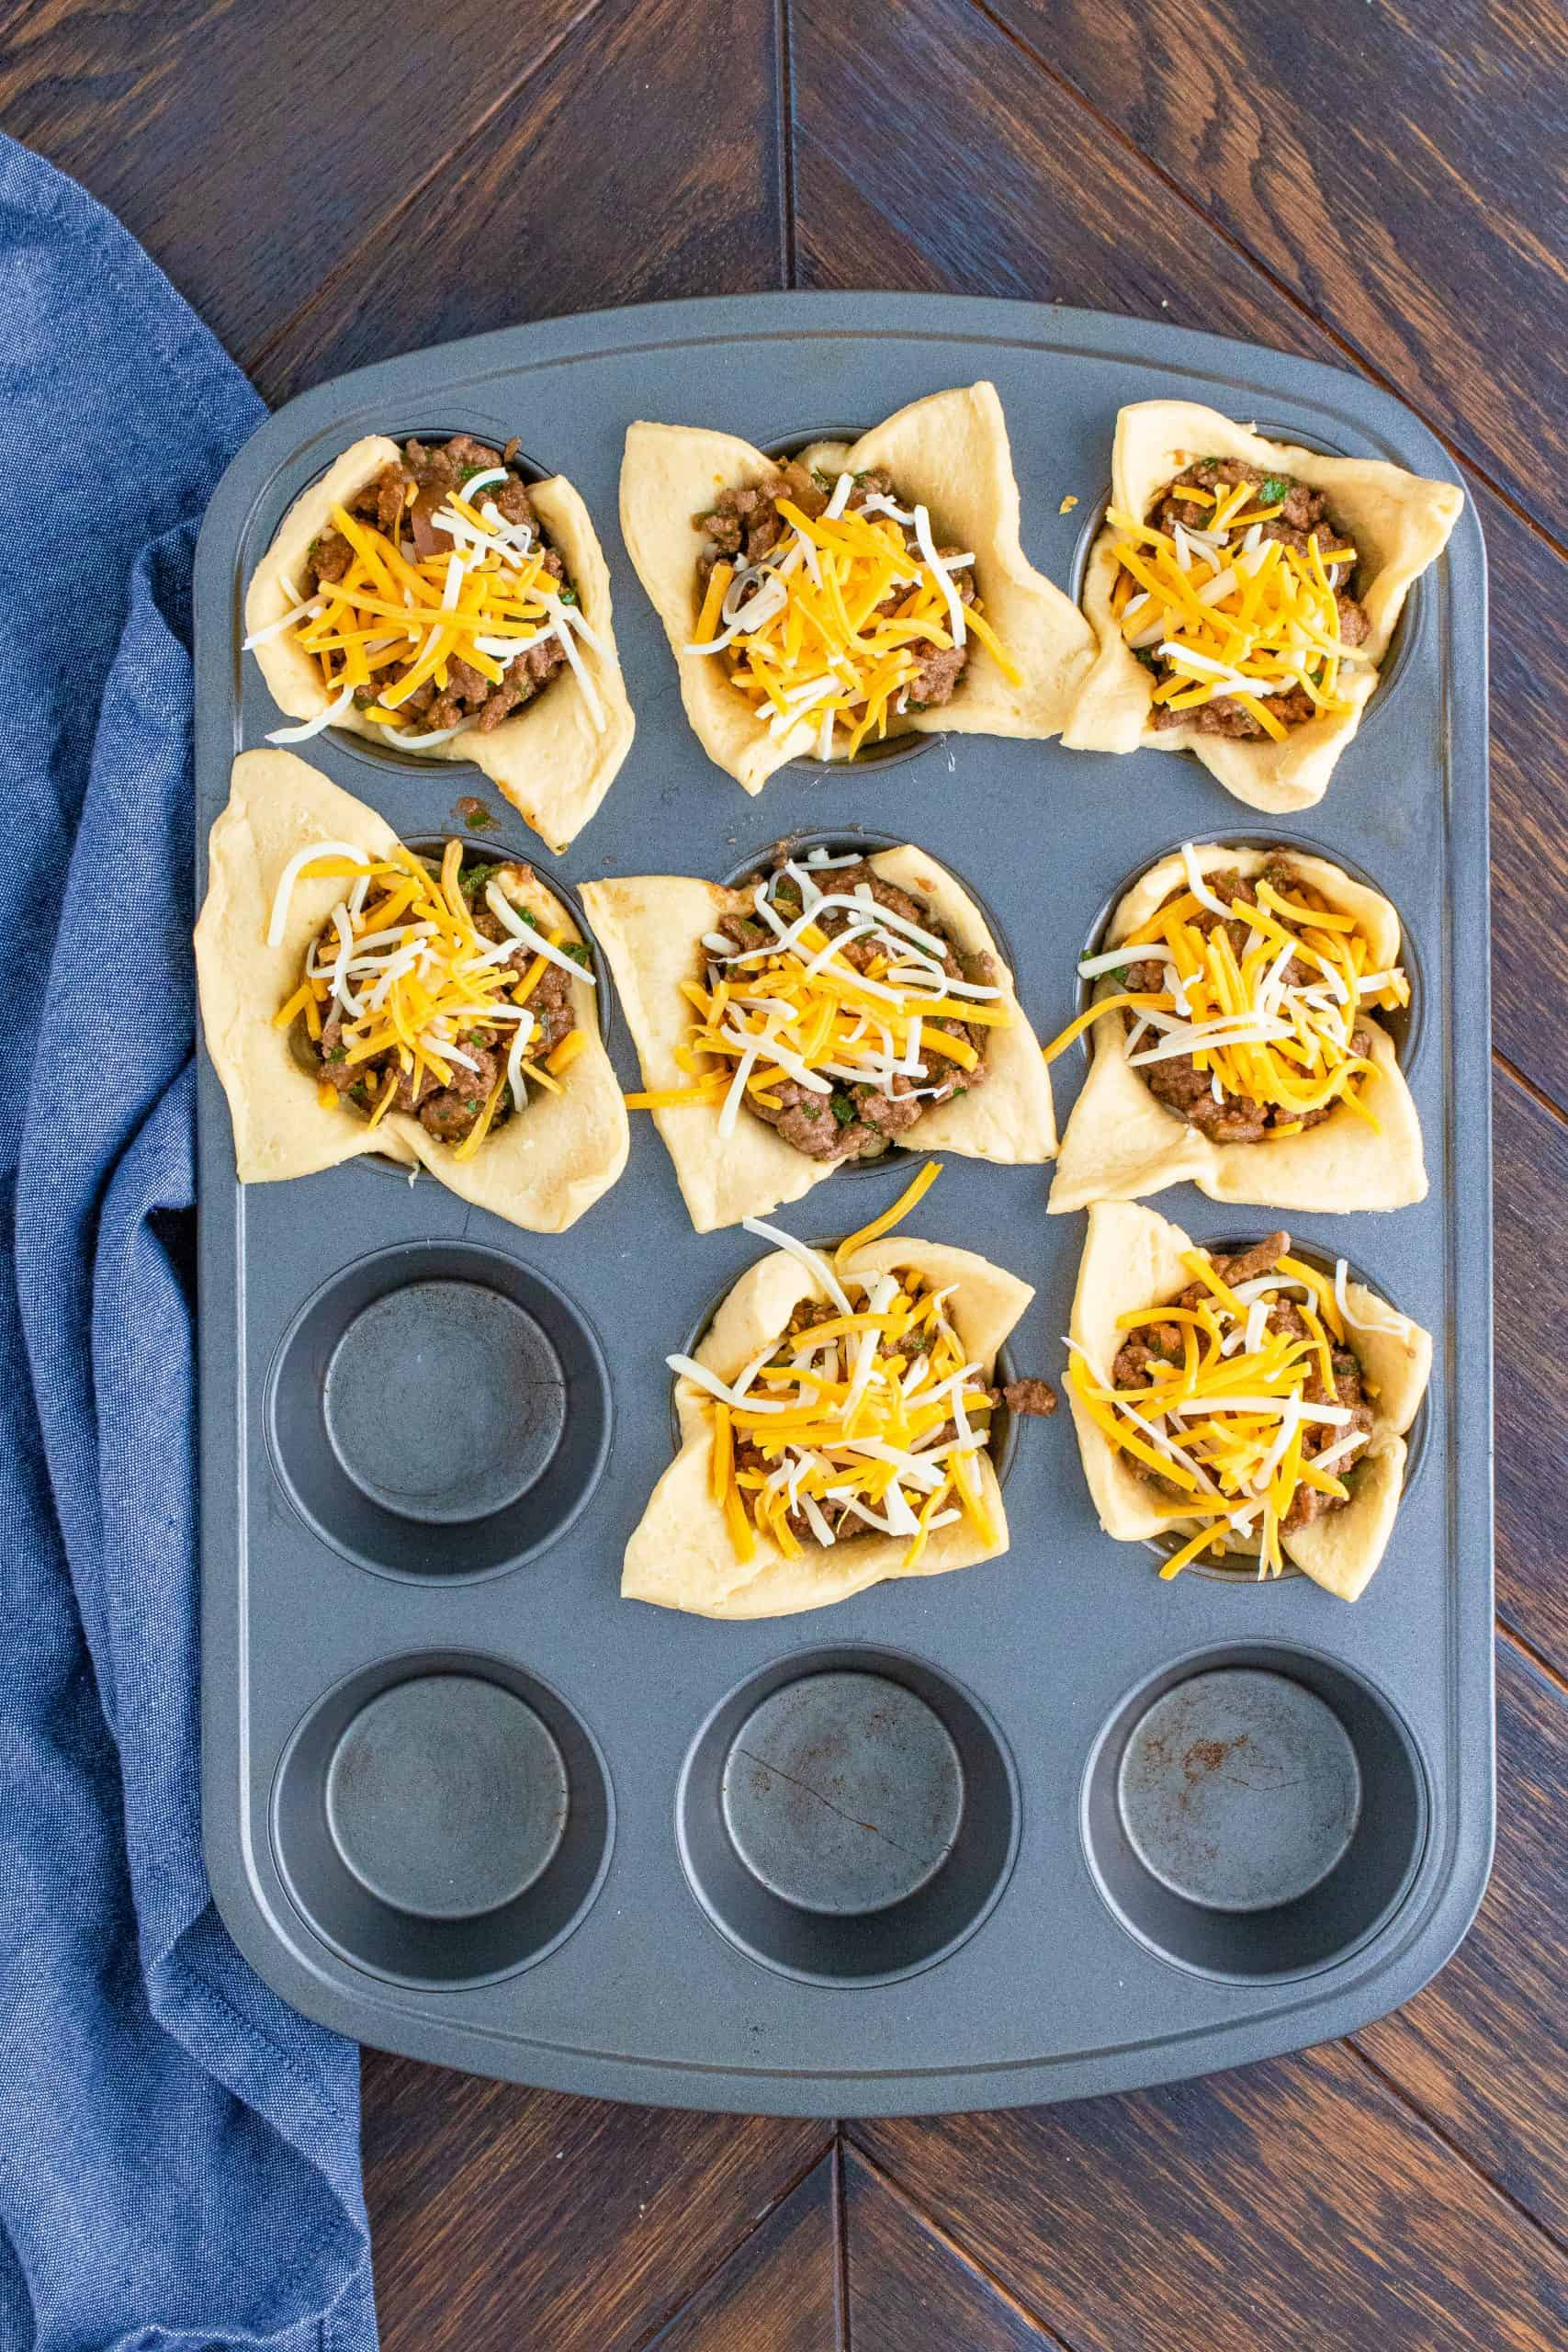 More cheese topping the taco meat in muffin tin.